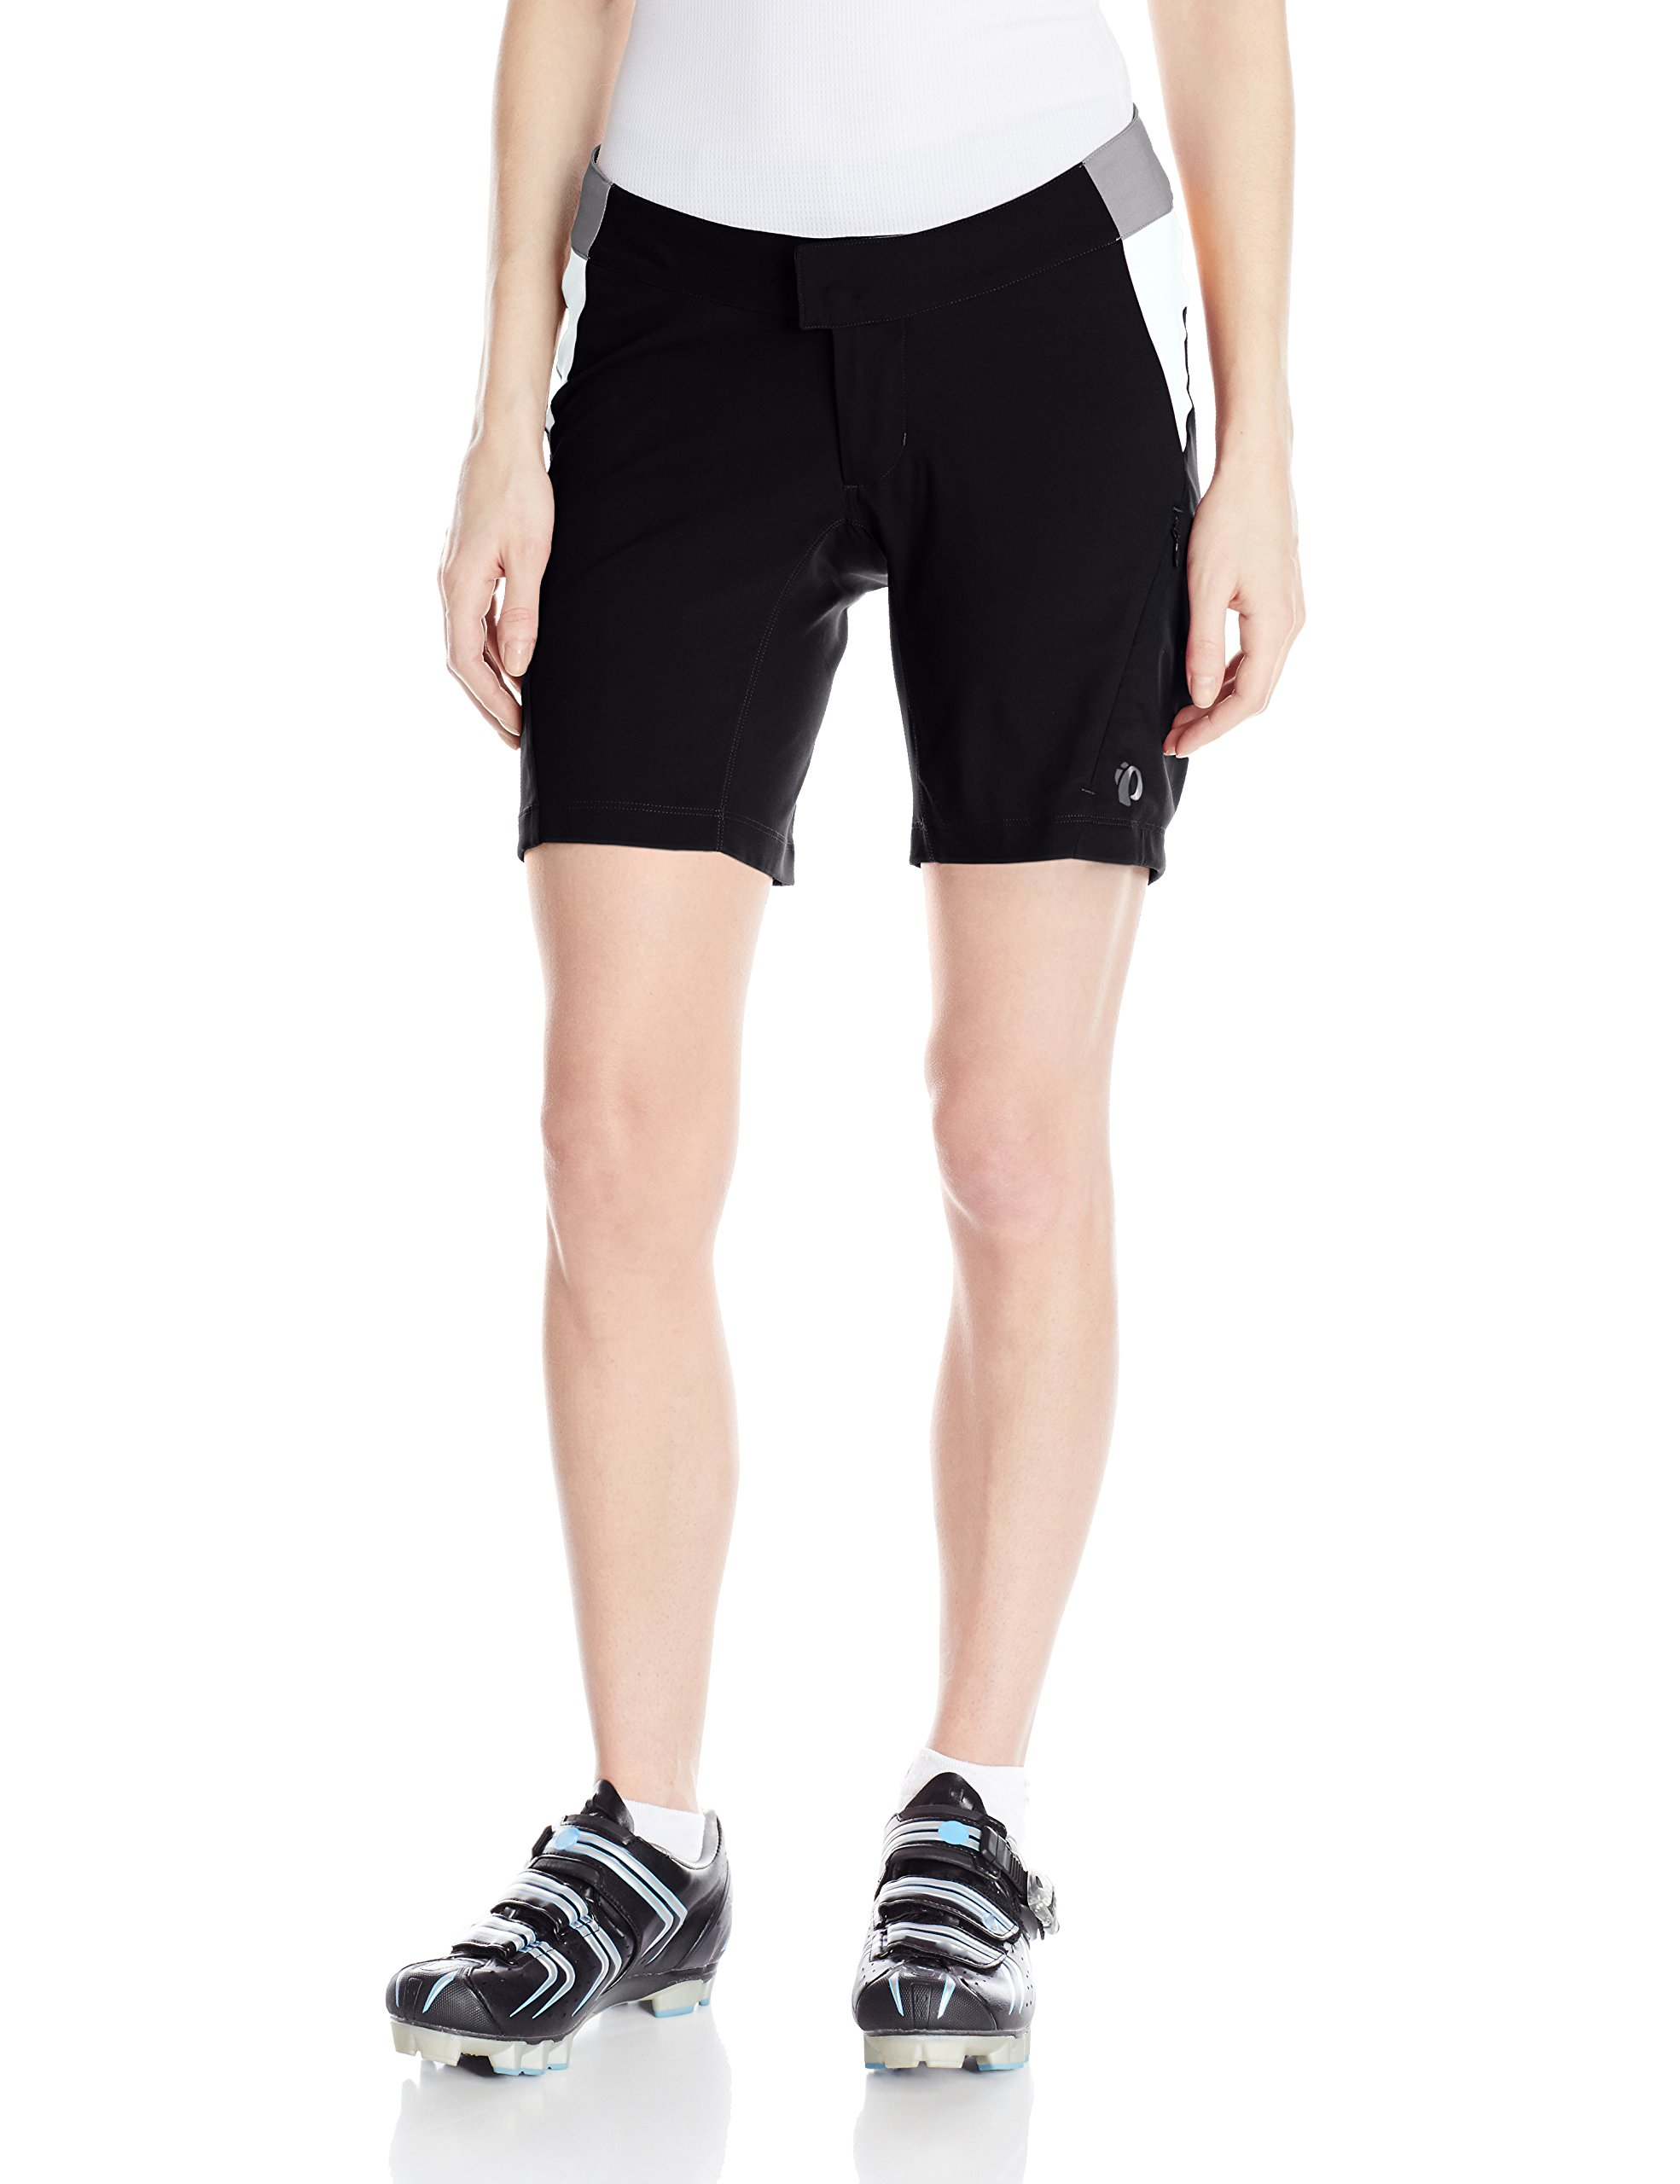 Pearl Izumi - Ride Women's Canyon Shorts, Black, Medium